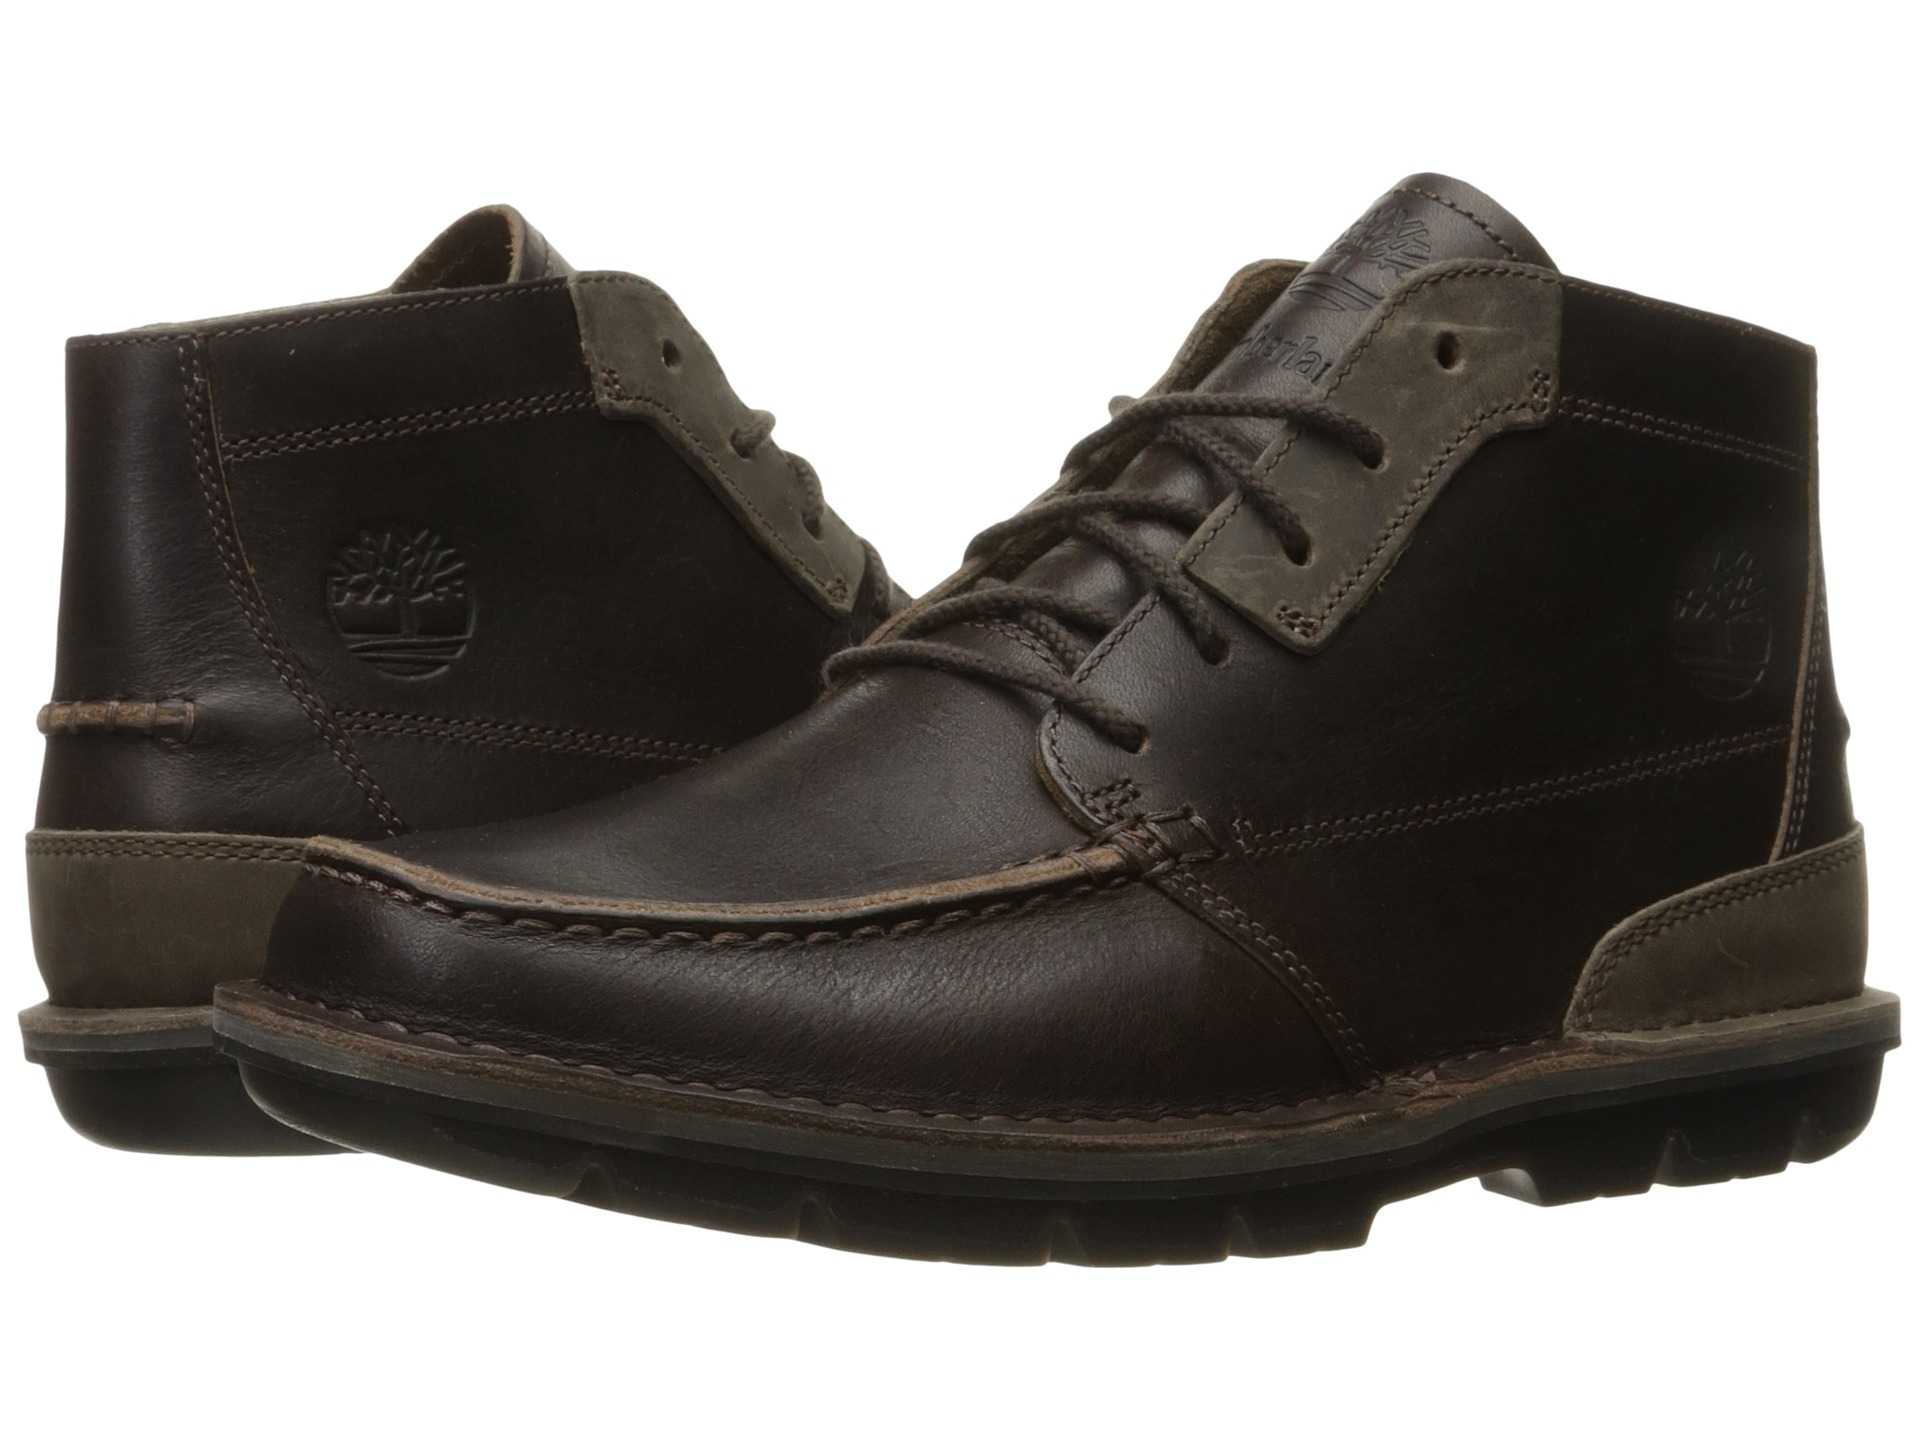 Timberland, Boots, Men | Shipped Free at Zappos